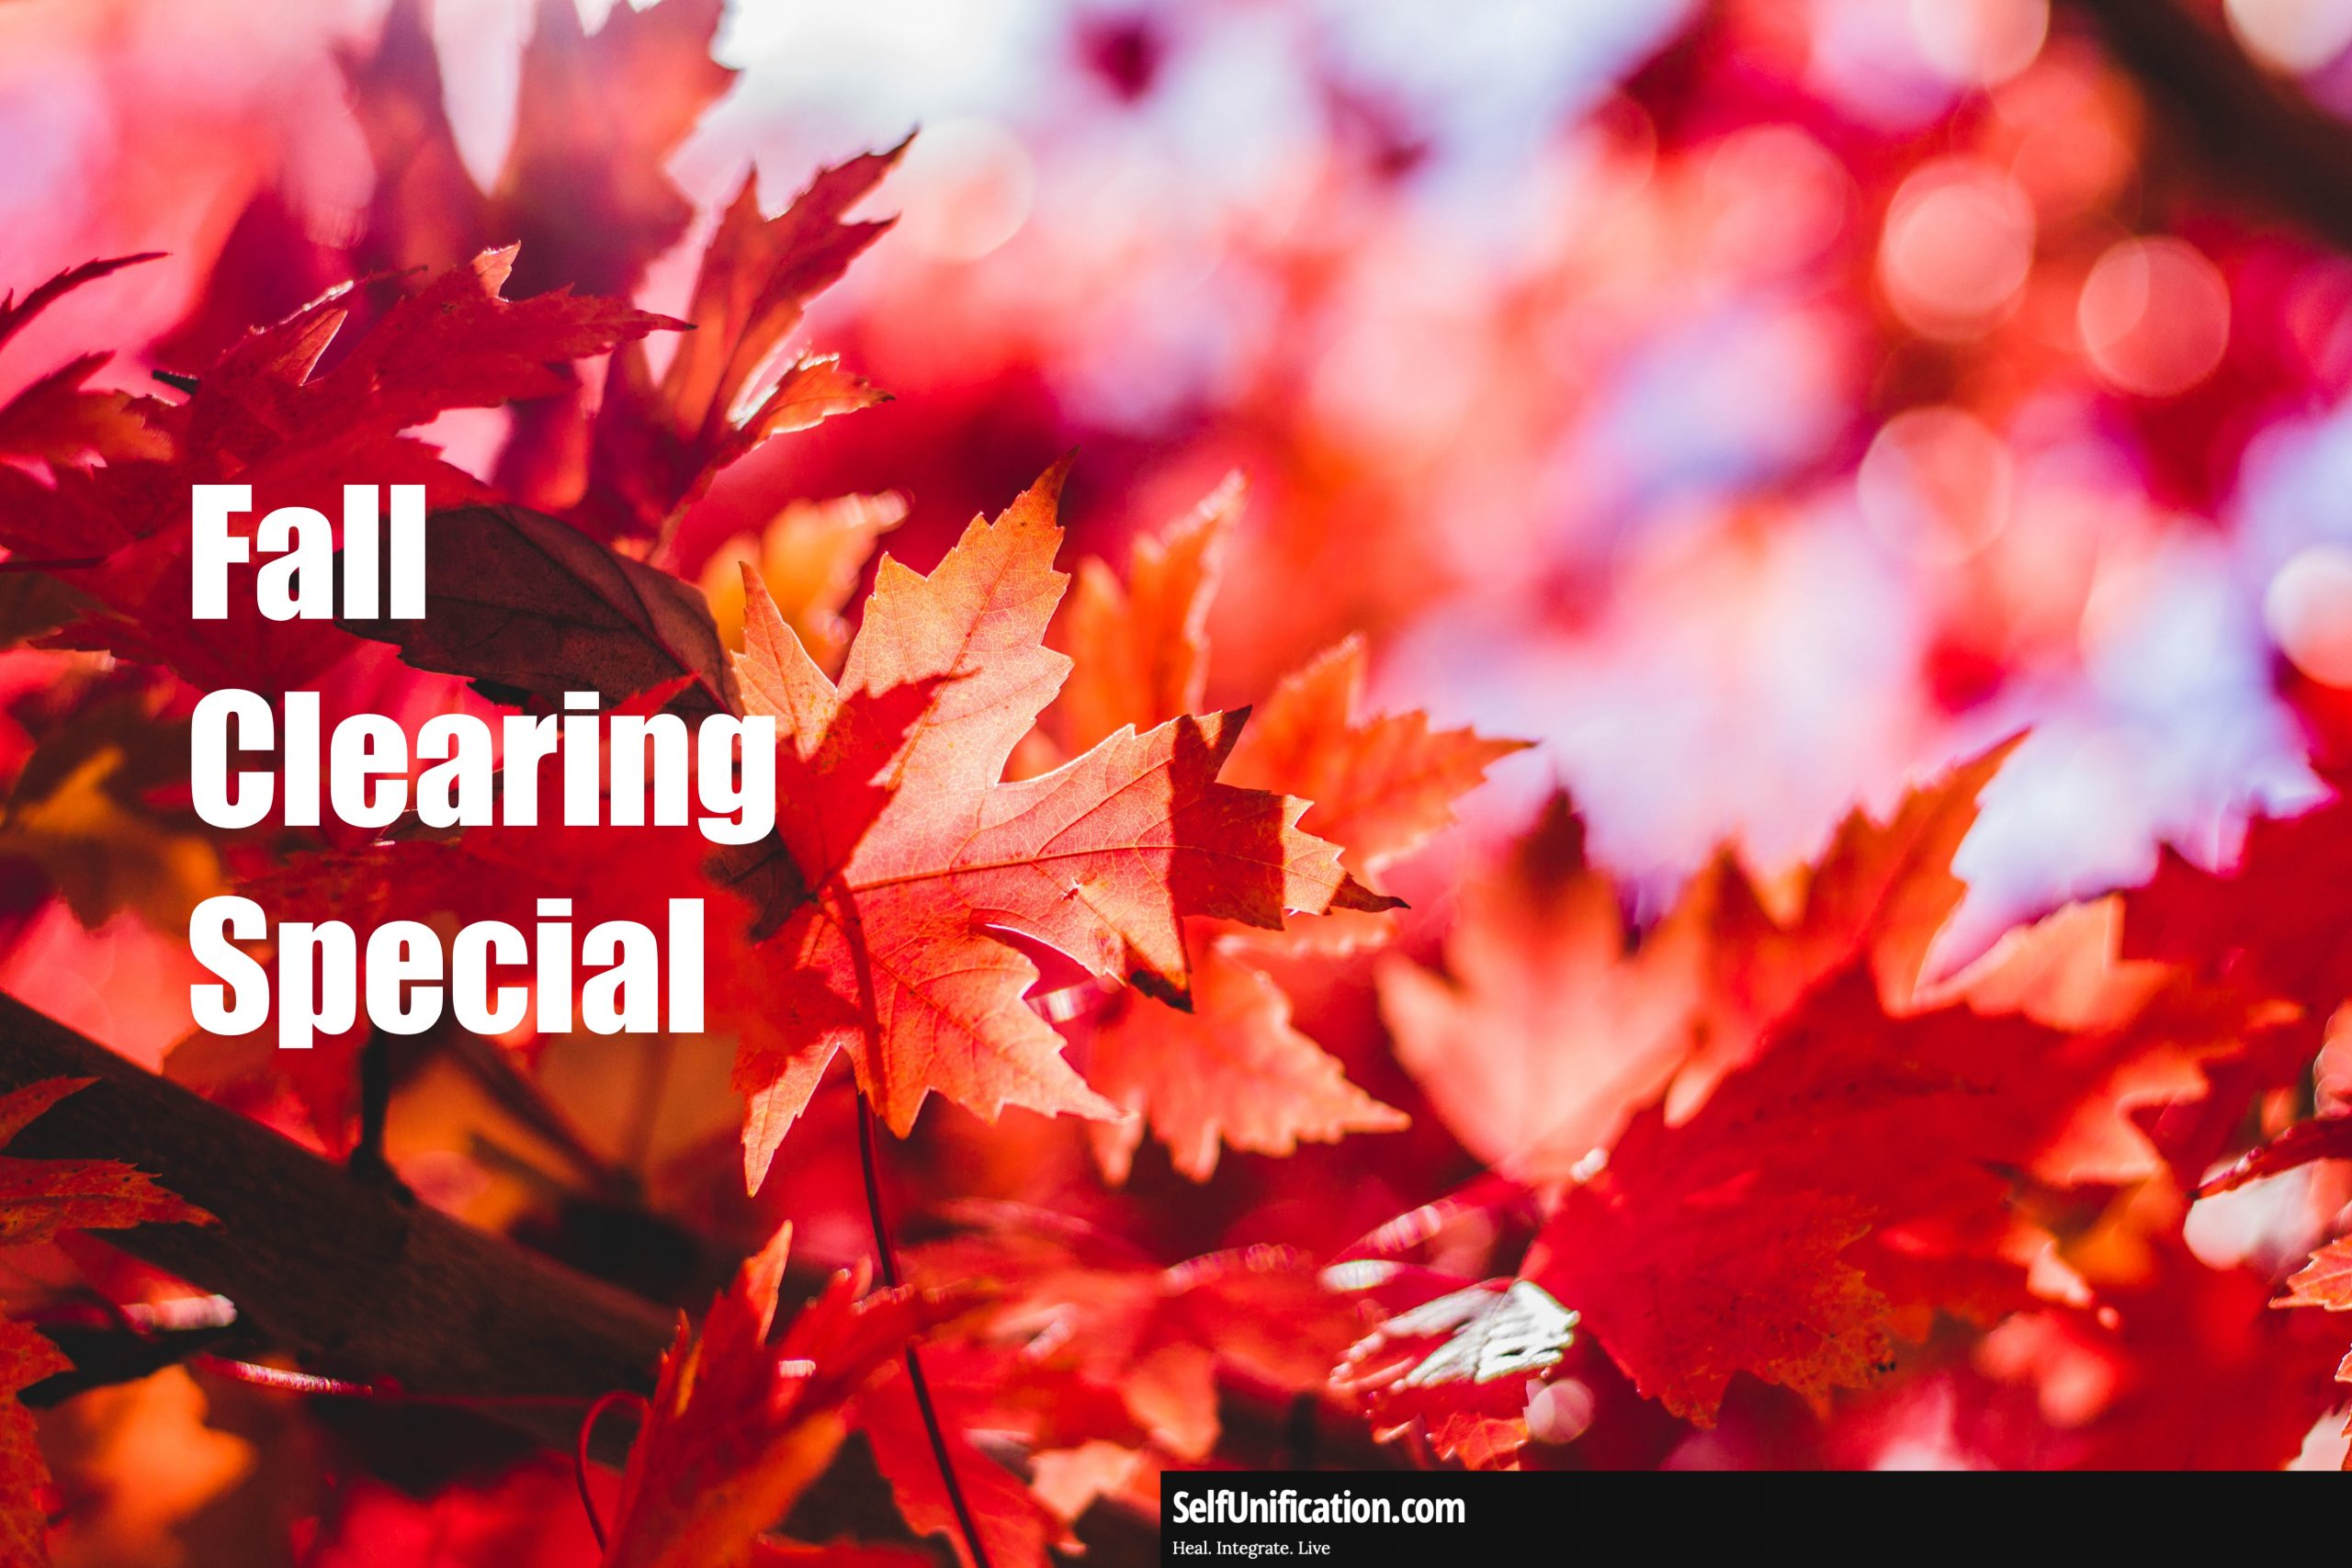 Fall Clearing Special Until Oct. 8th, 2021